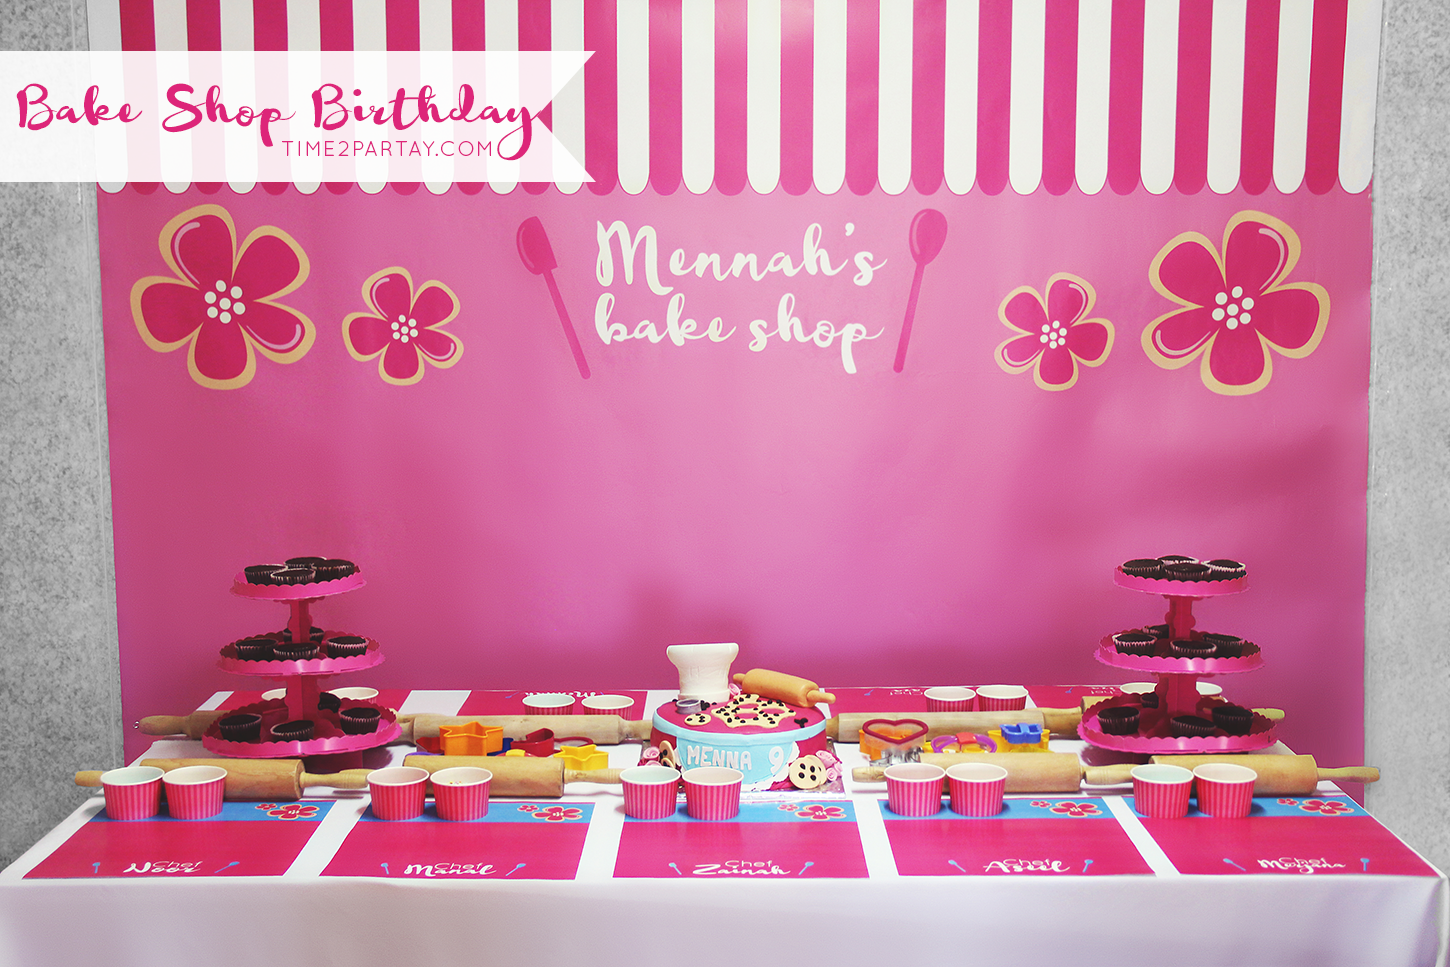 Bake Shop Birthday